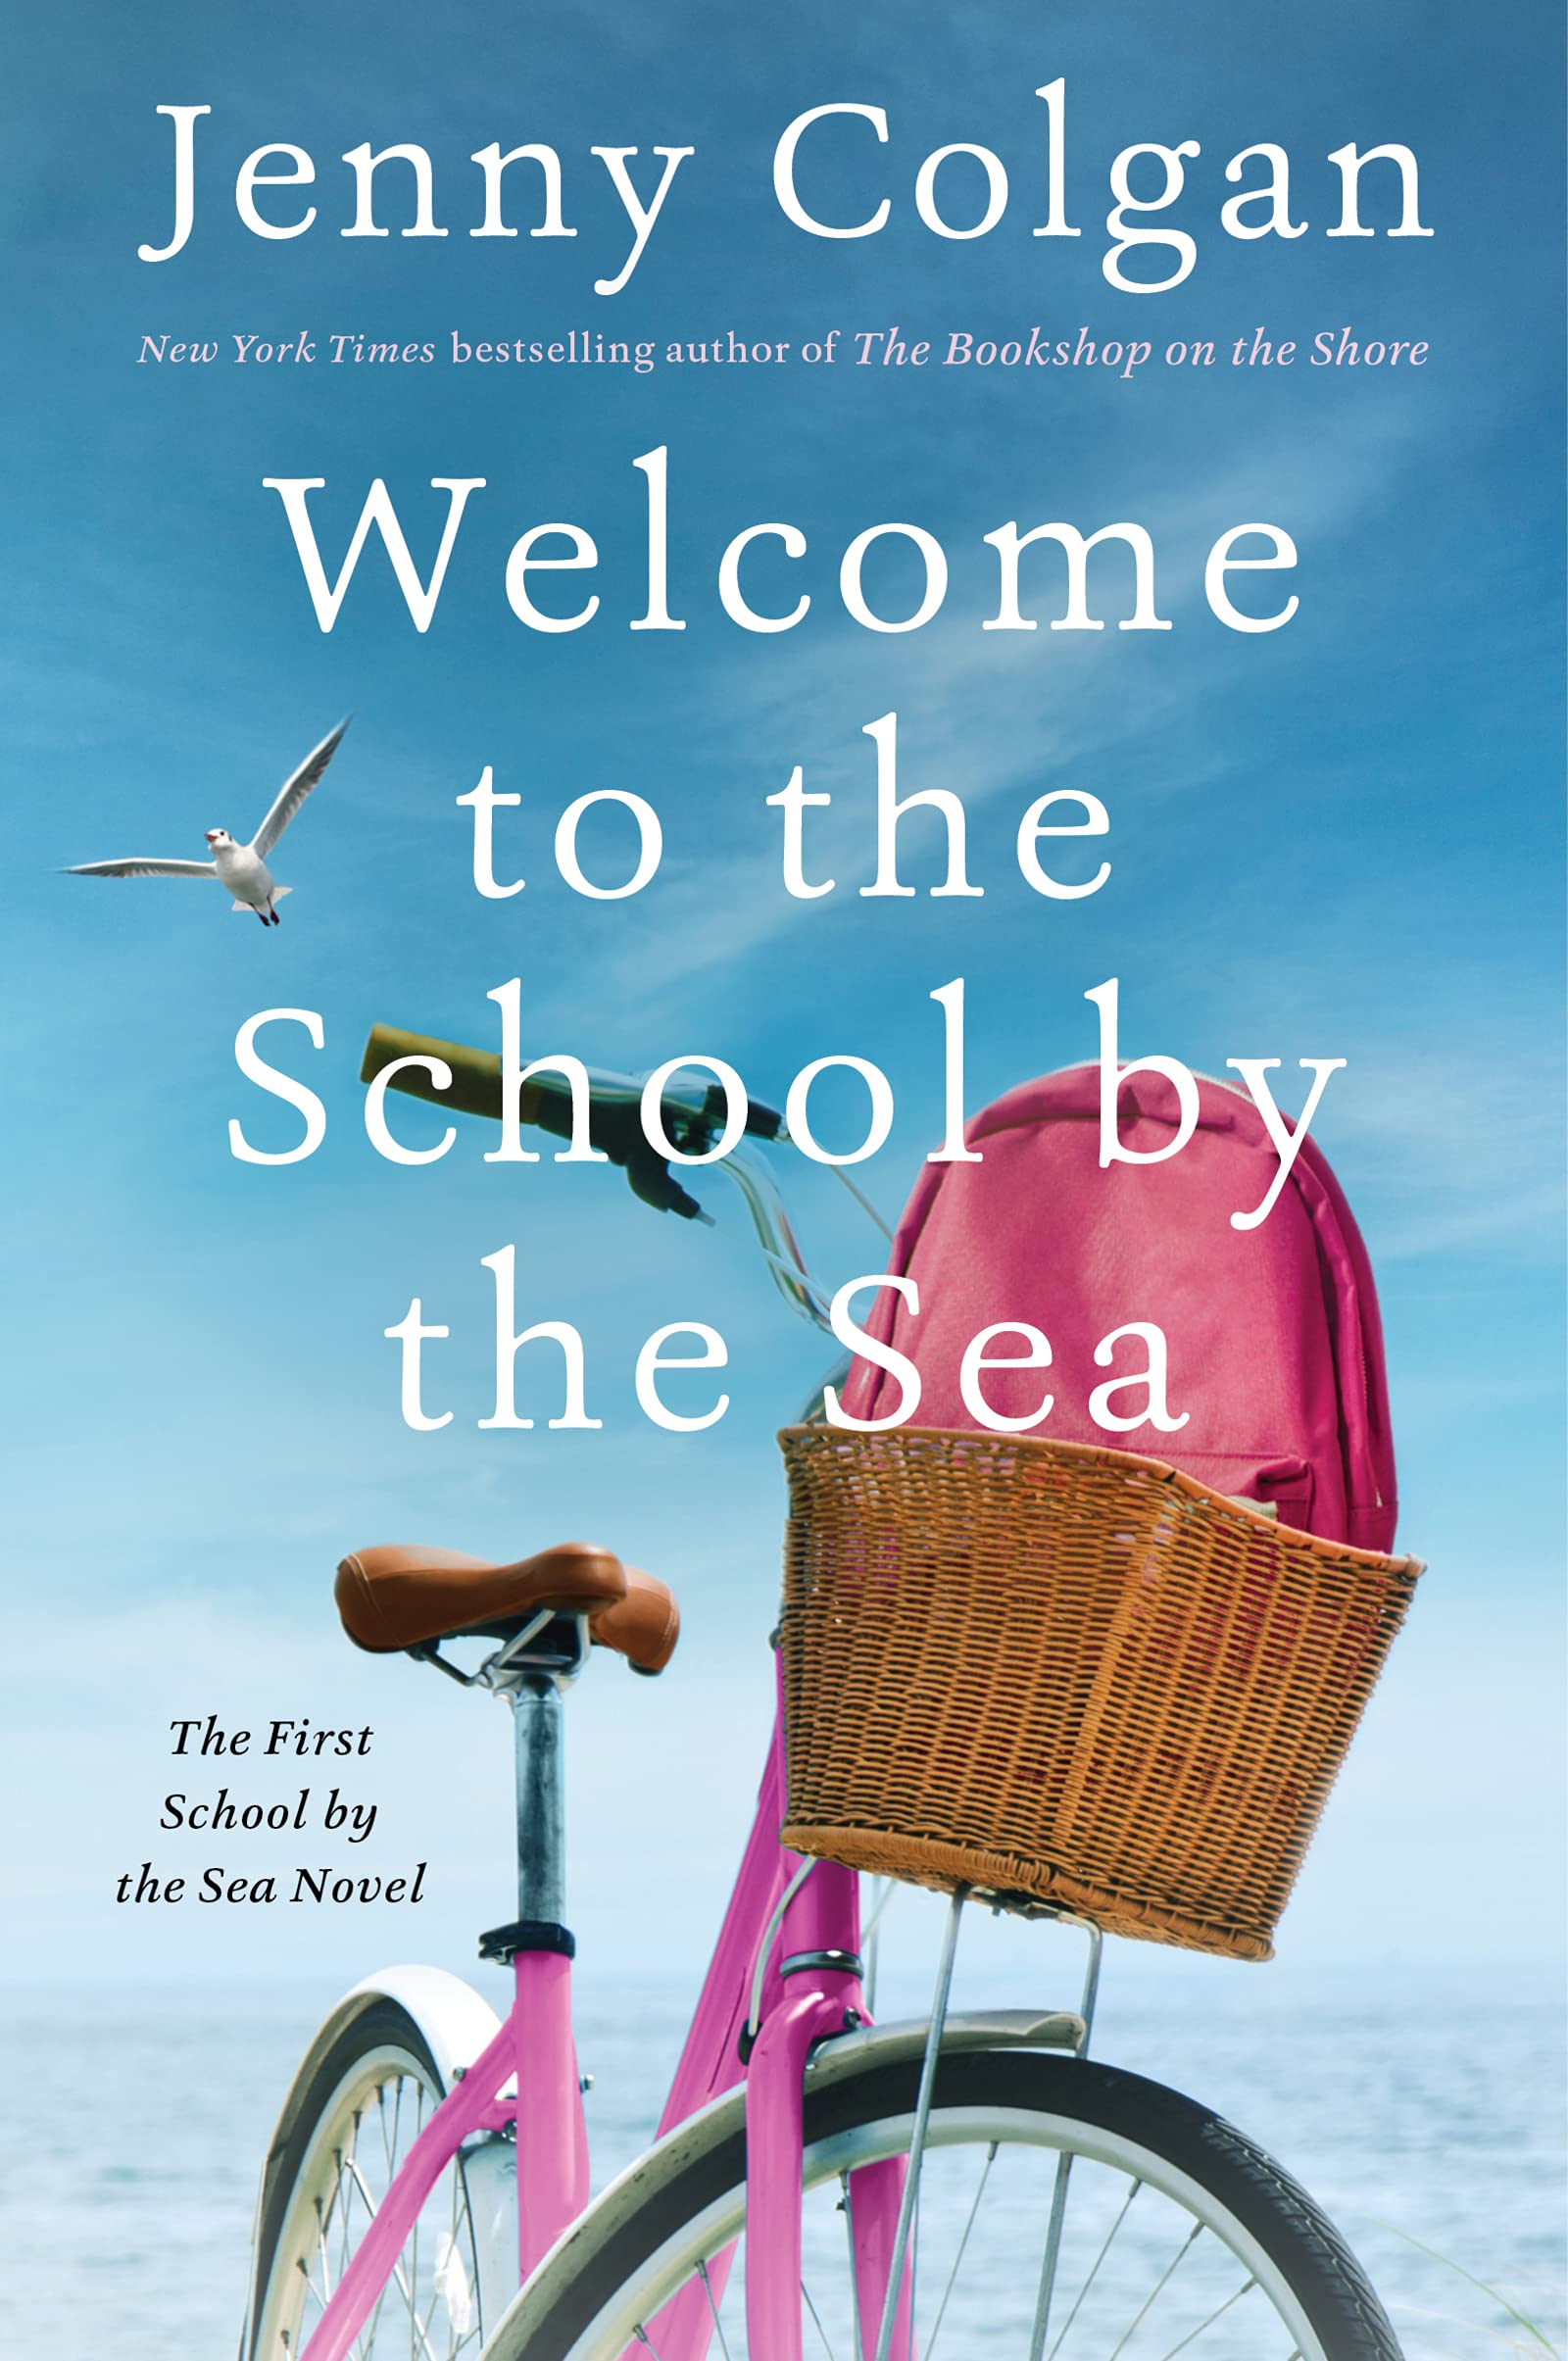 Welcome to the School by the Sea